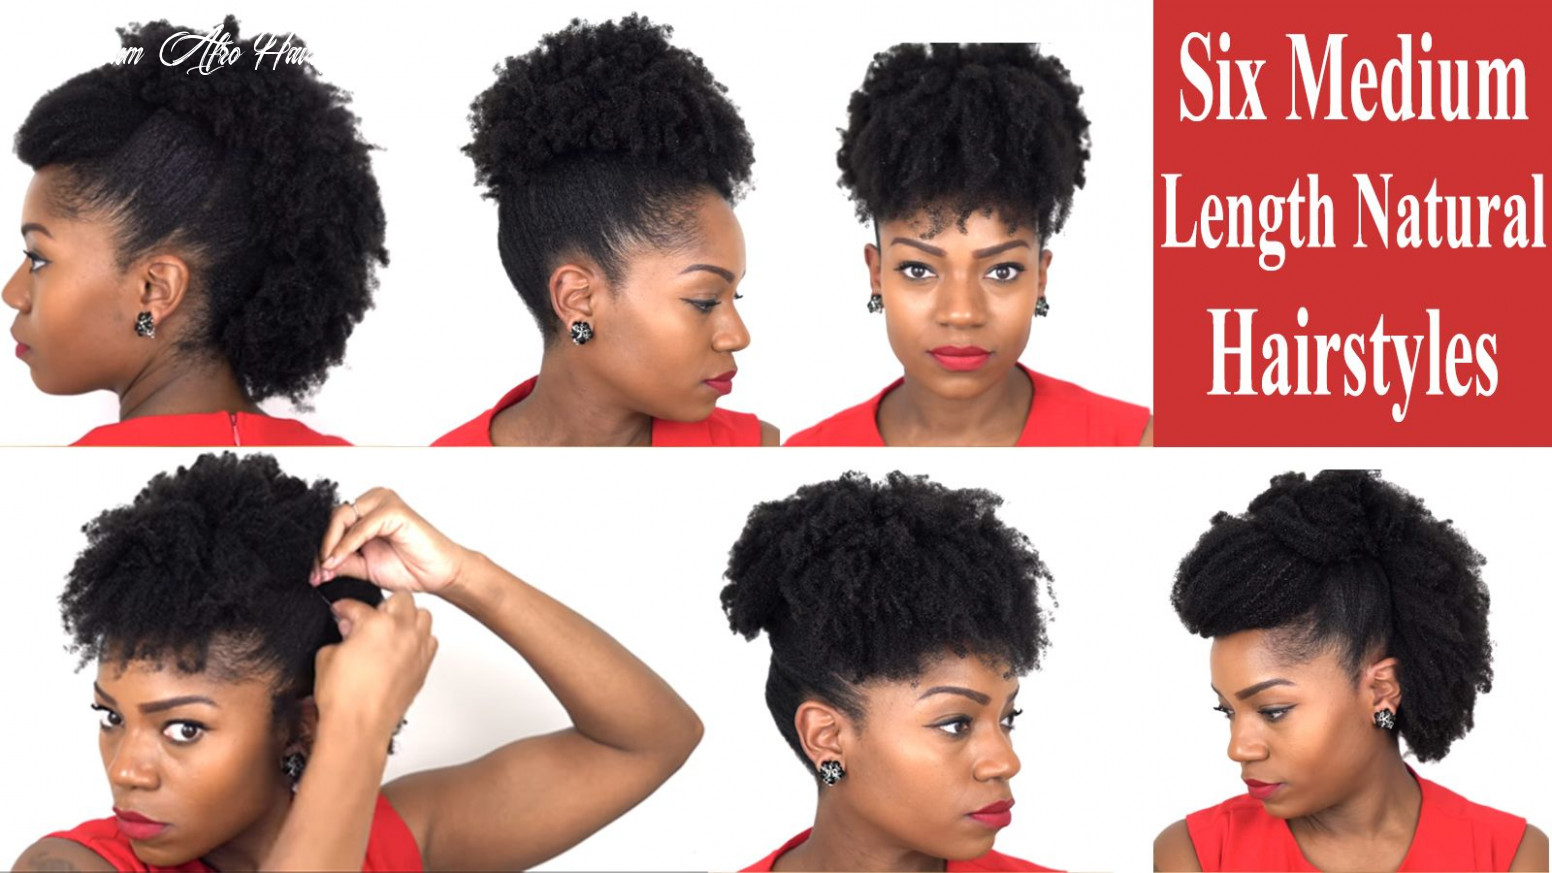 Six fabulous hairstyles for medium length natural hair – great for